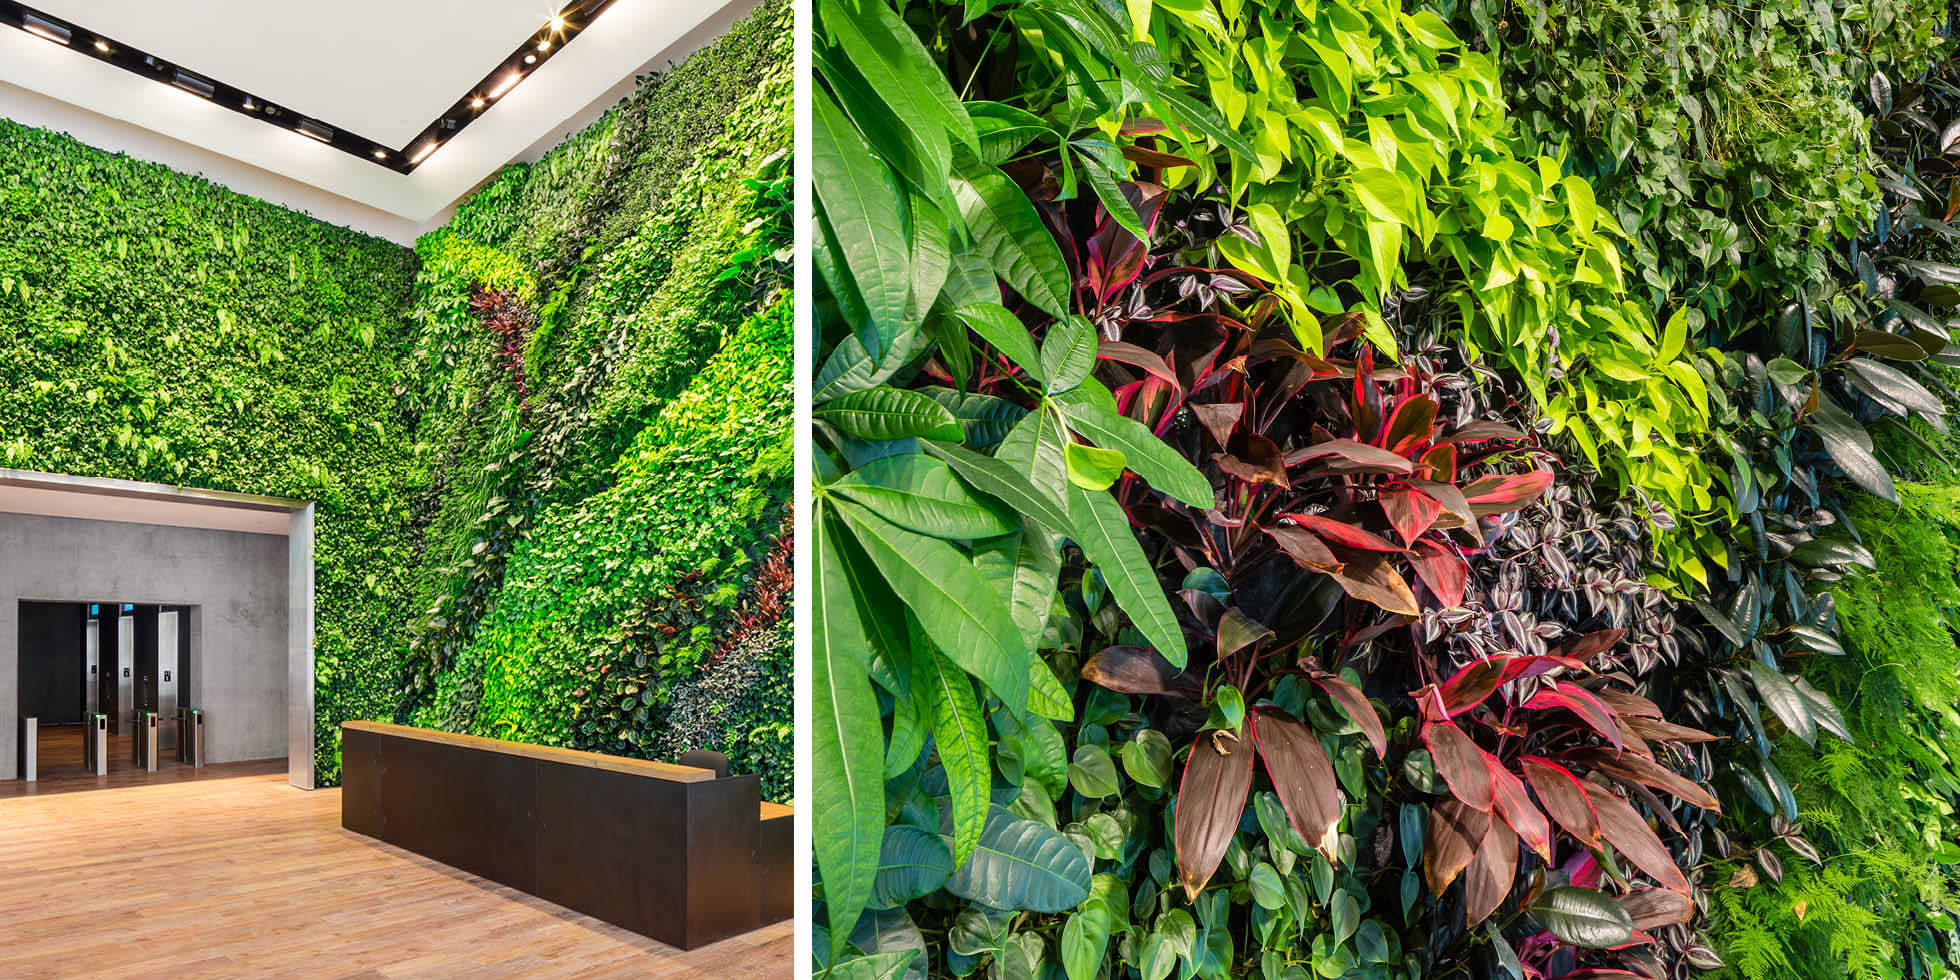 Foundry Square III Living Wall by Habitat Horticulture - View 4